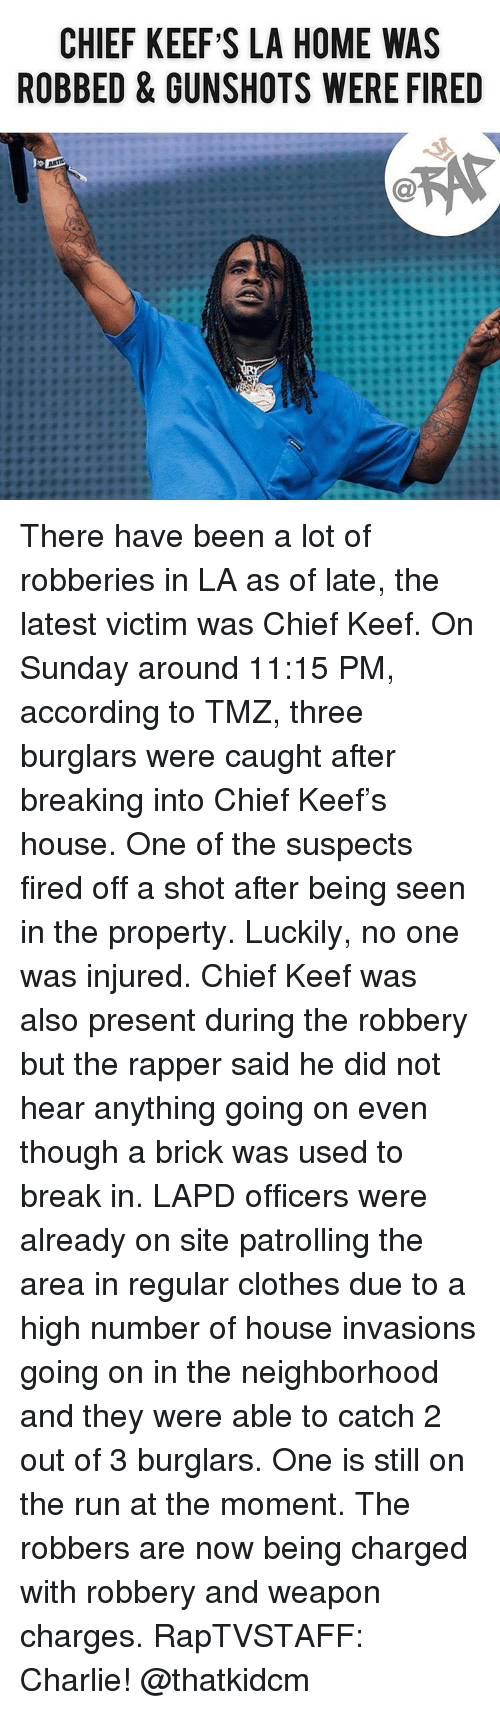 Keef: CHIEF KEEF S LA HOME WAS  ROBBED & GUNSHOTS WERE FIRED There have been a lot of robberies in LA as of late, the latest victim was Chief Keef. On Sunday around 11:15 PM, according to TMZ, three burglars were caught after breaking into Chief Keef's house. One of the suspects fired off a shot after being seen in the property. Luckily, no one was injured. Chief Keef was also present during the robbery but the rapper said he did not hear anything going on even though a brick was used to break in. LAPD officers were already on site patrolling the area in regular clothes due to a high number of house invasions going on in the neighborhood and they were able to catch 2 out of 3 burglars. One is still on the run at the moment. The robbers are now being charged with robbery and weapon charges. RapTVSTAFF: Charlie! @thatkidcm